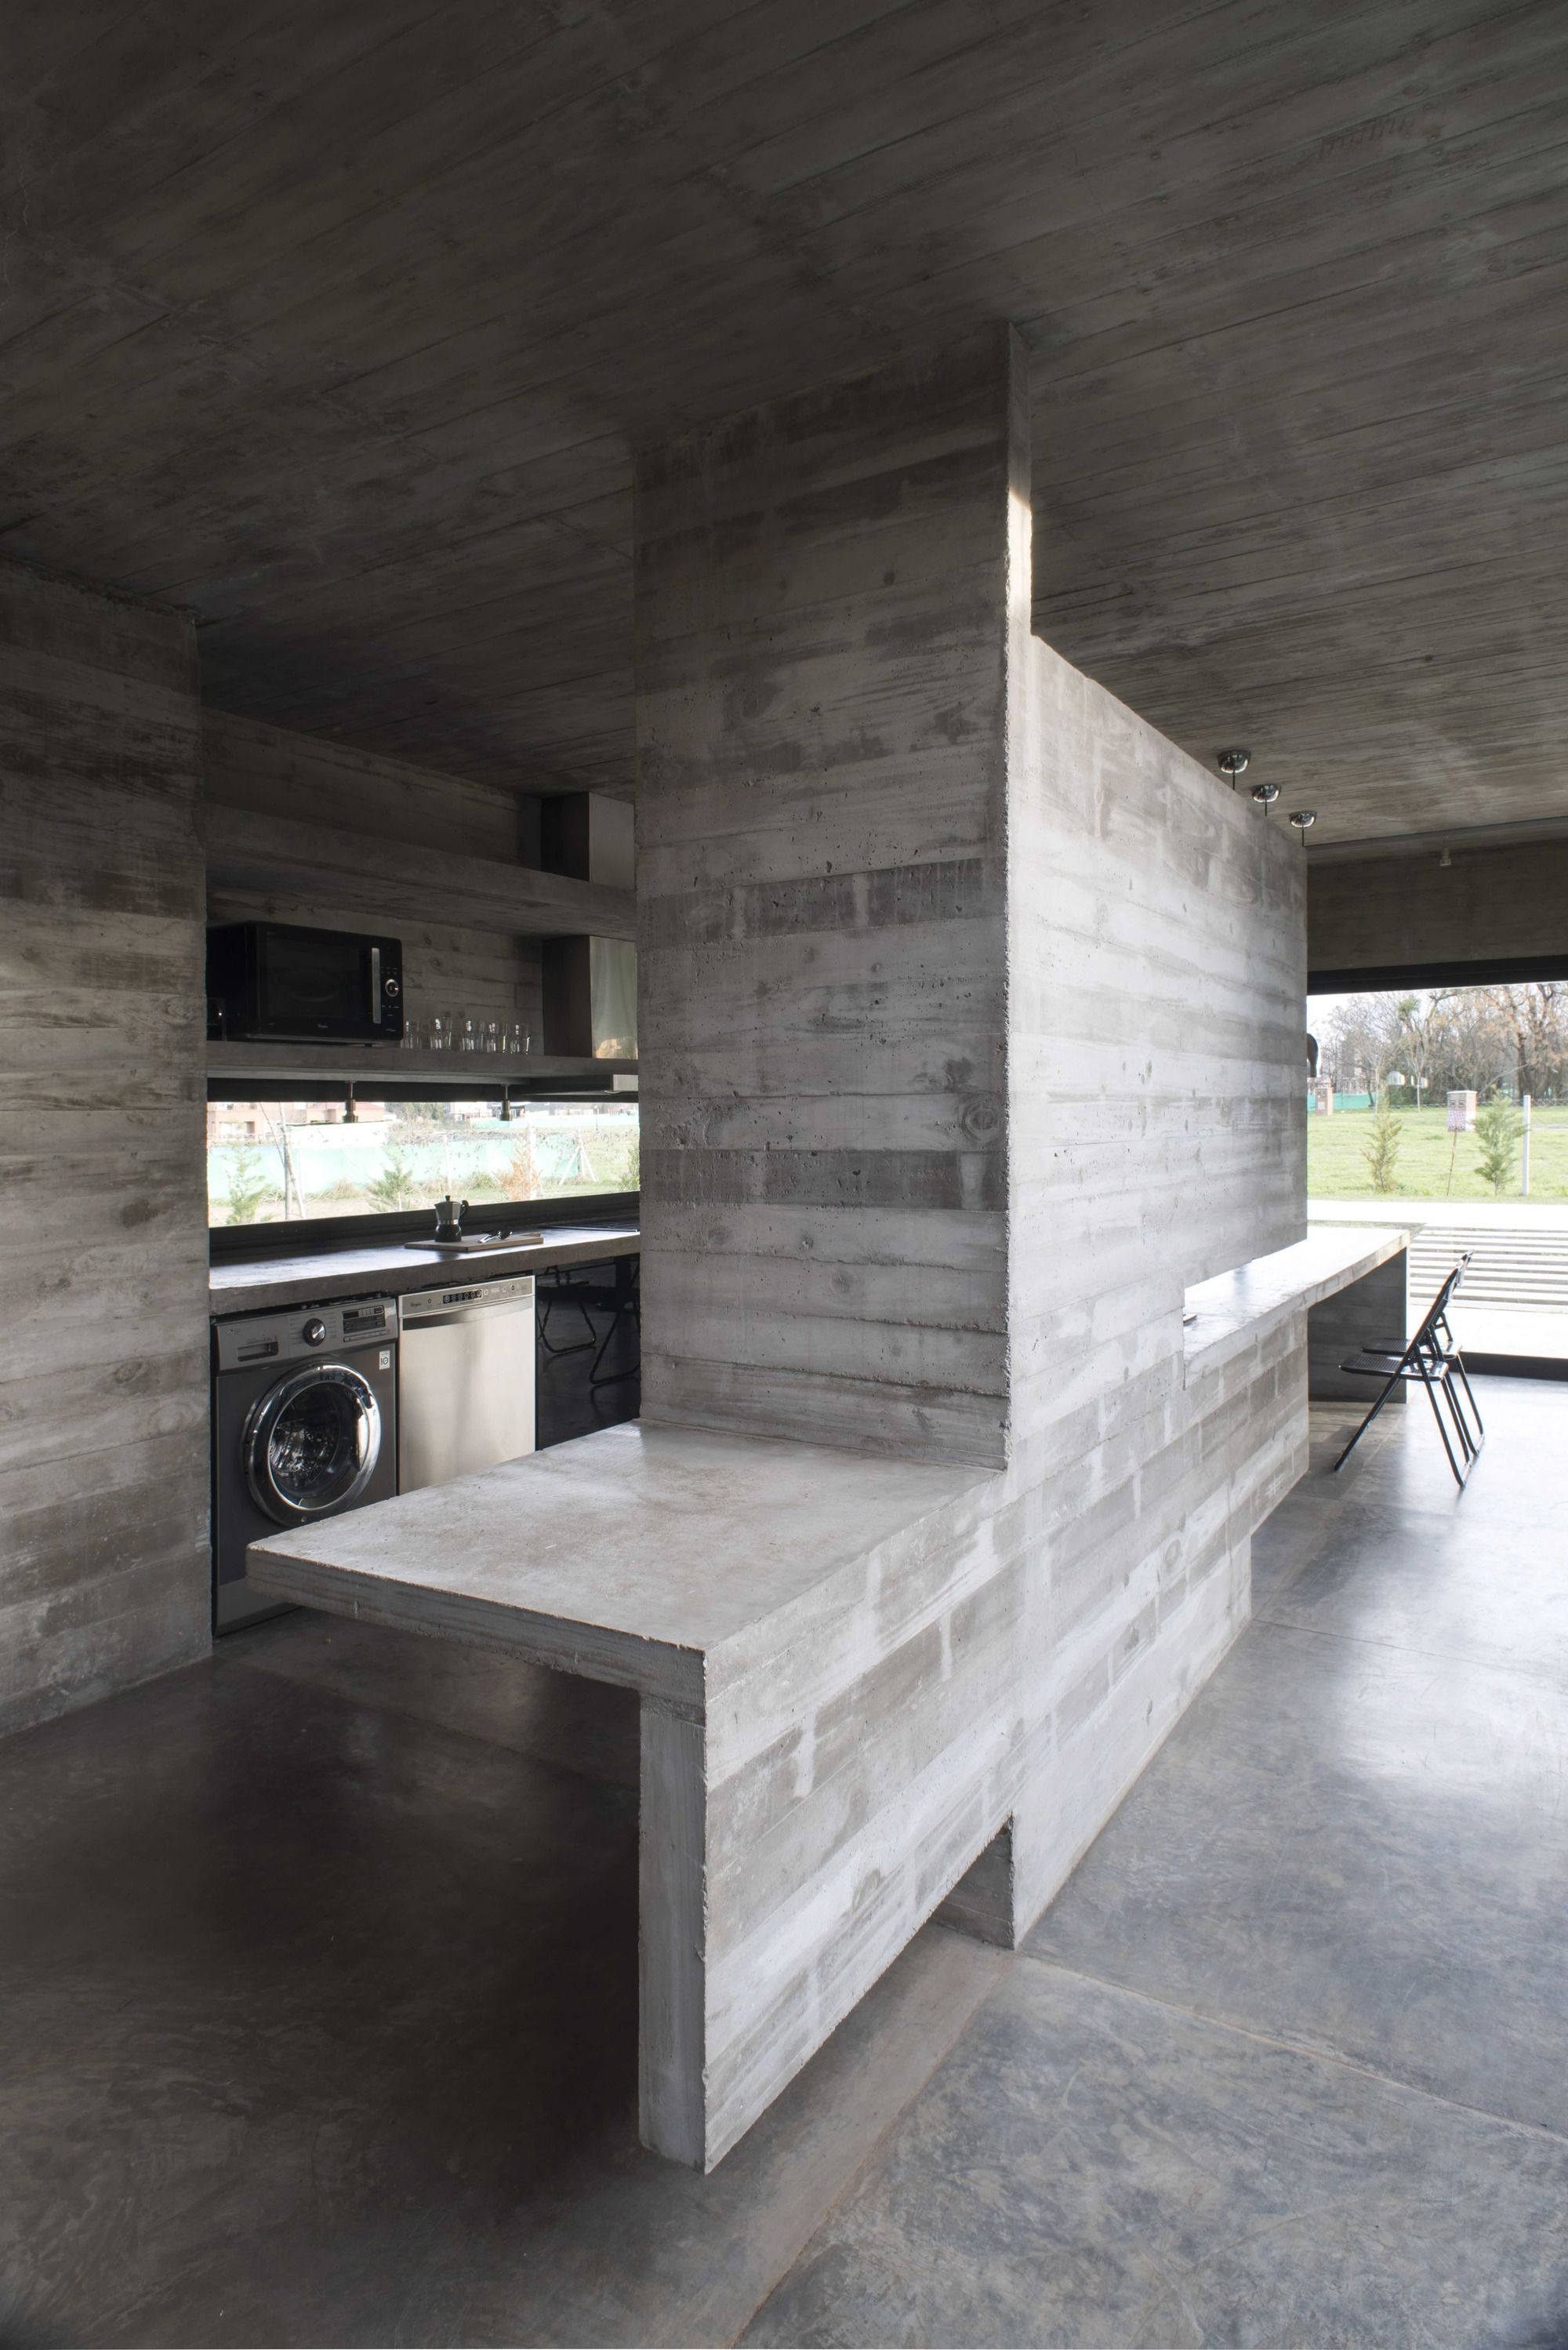 Gallery of MACH House / Luciano Kruk - 16